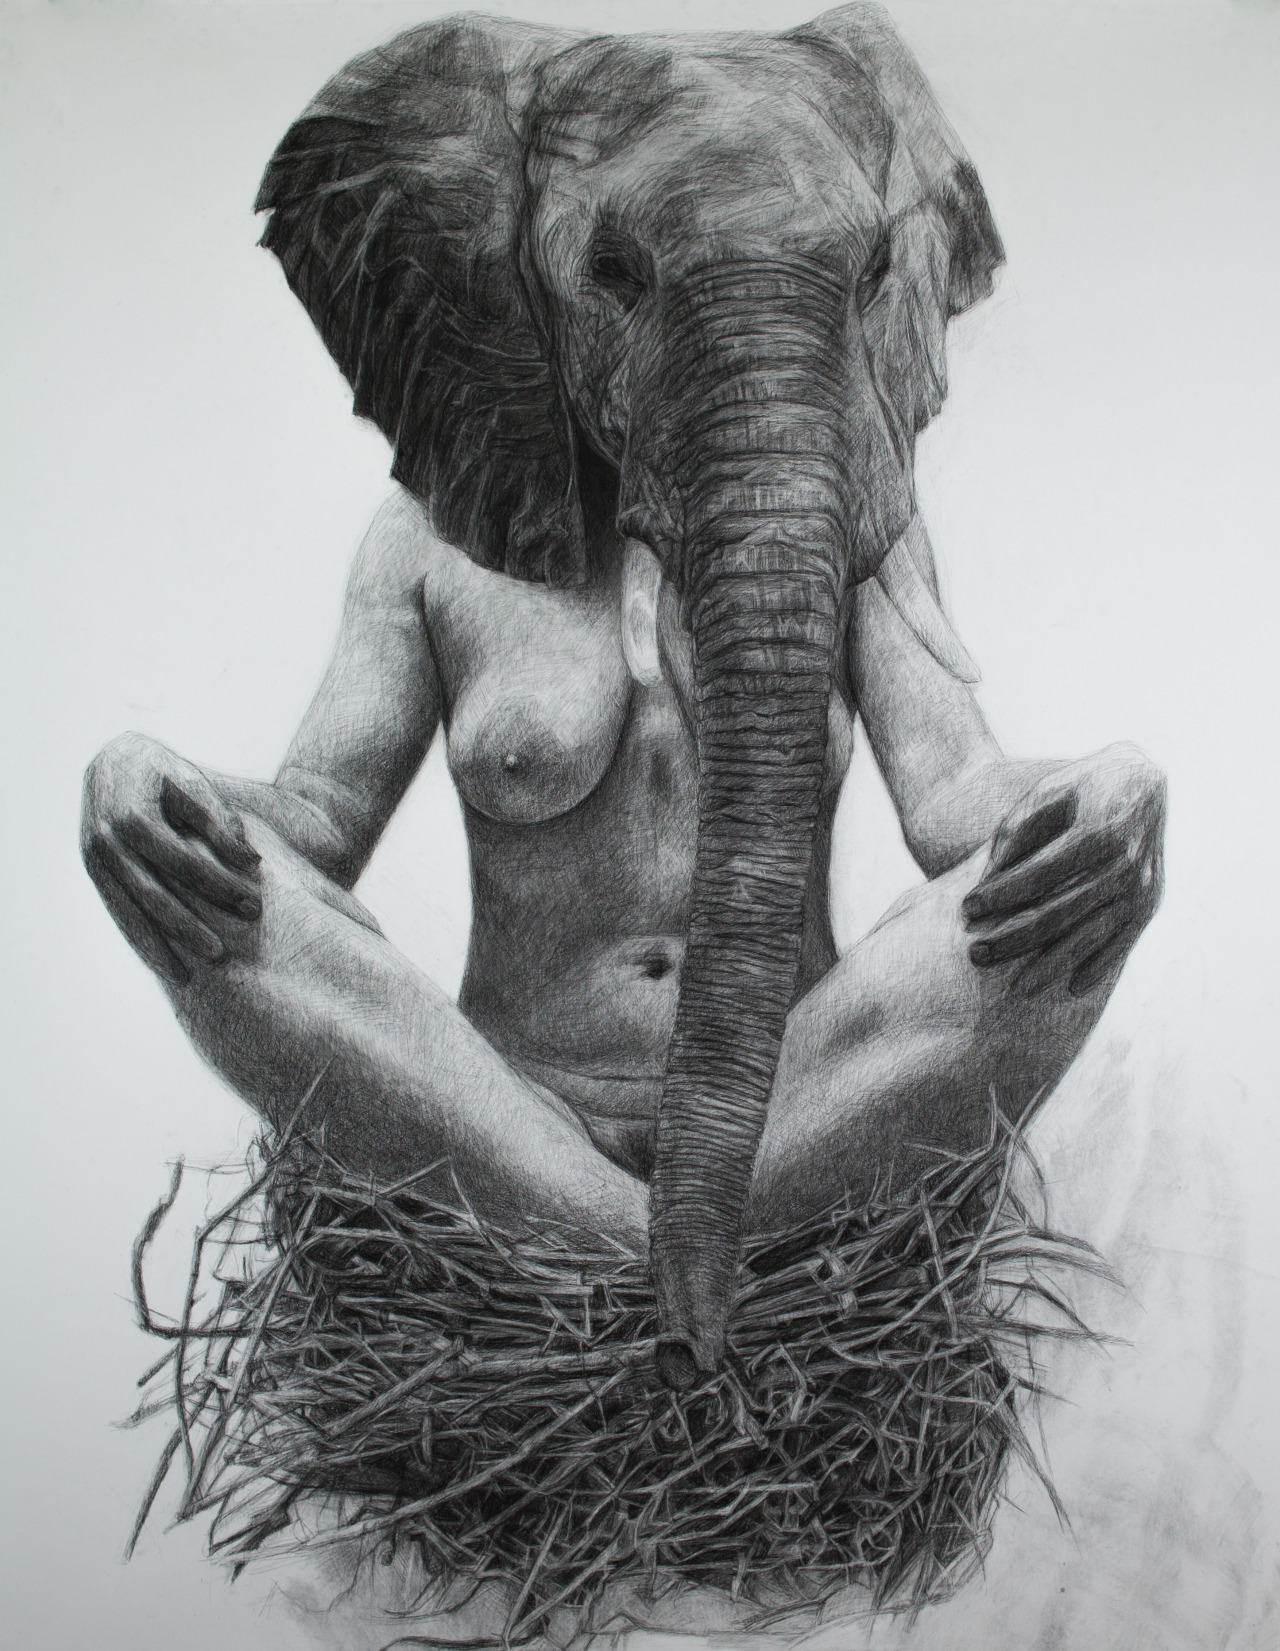 "just-art:  Elephant Nest by Kelly Blevins 52"" x 70"", Charcoal on paper, 2013"